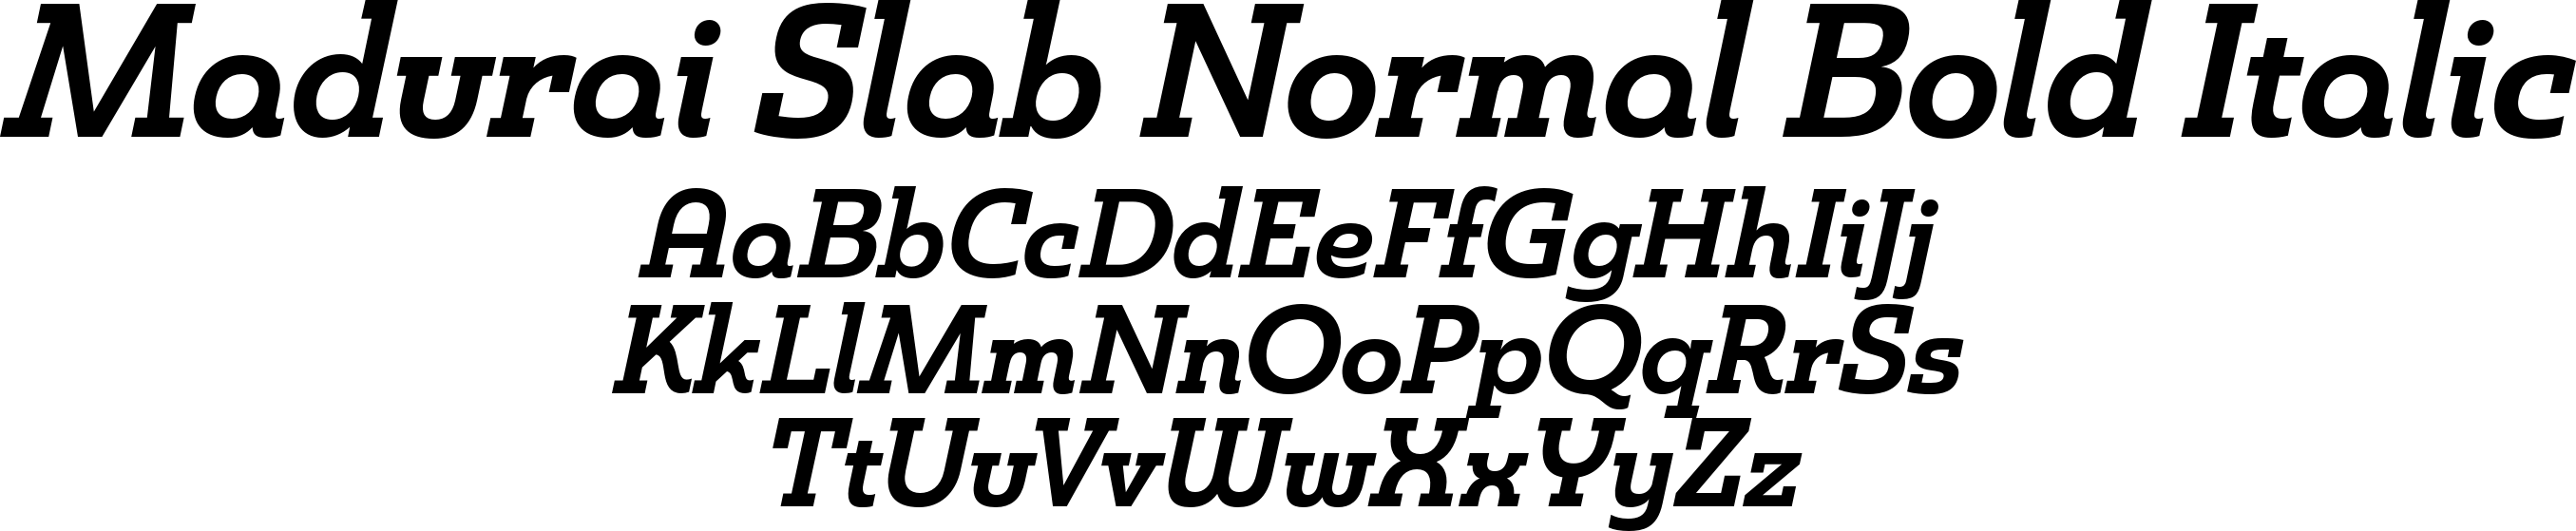 Madurai Slab Normal Bold Italic